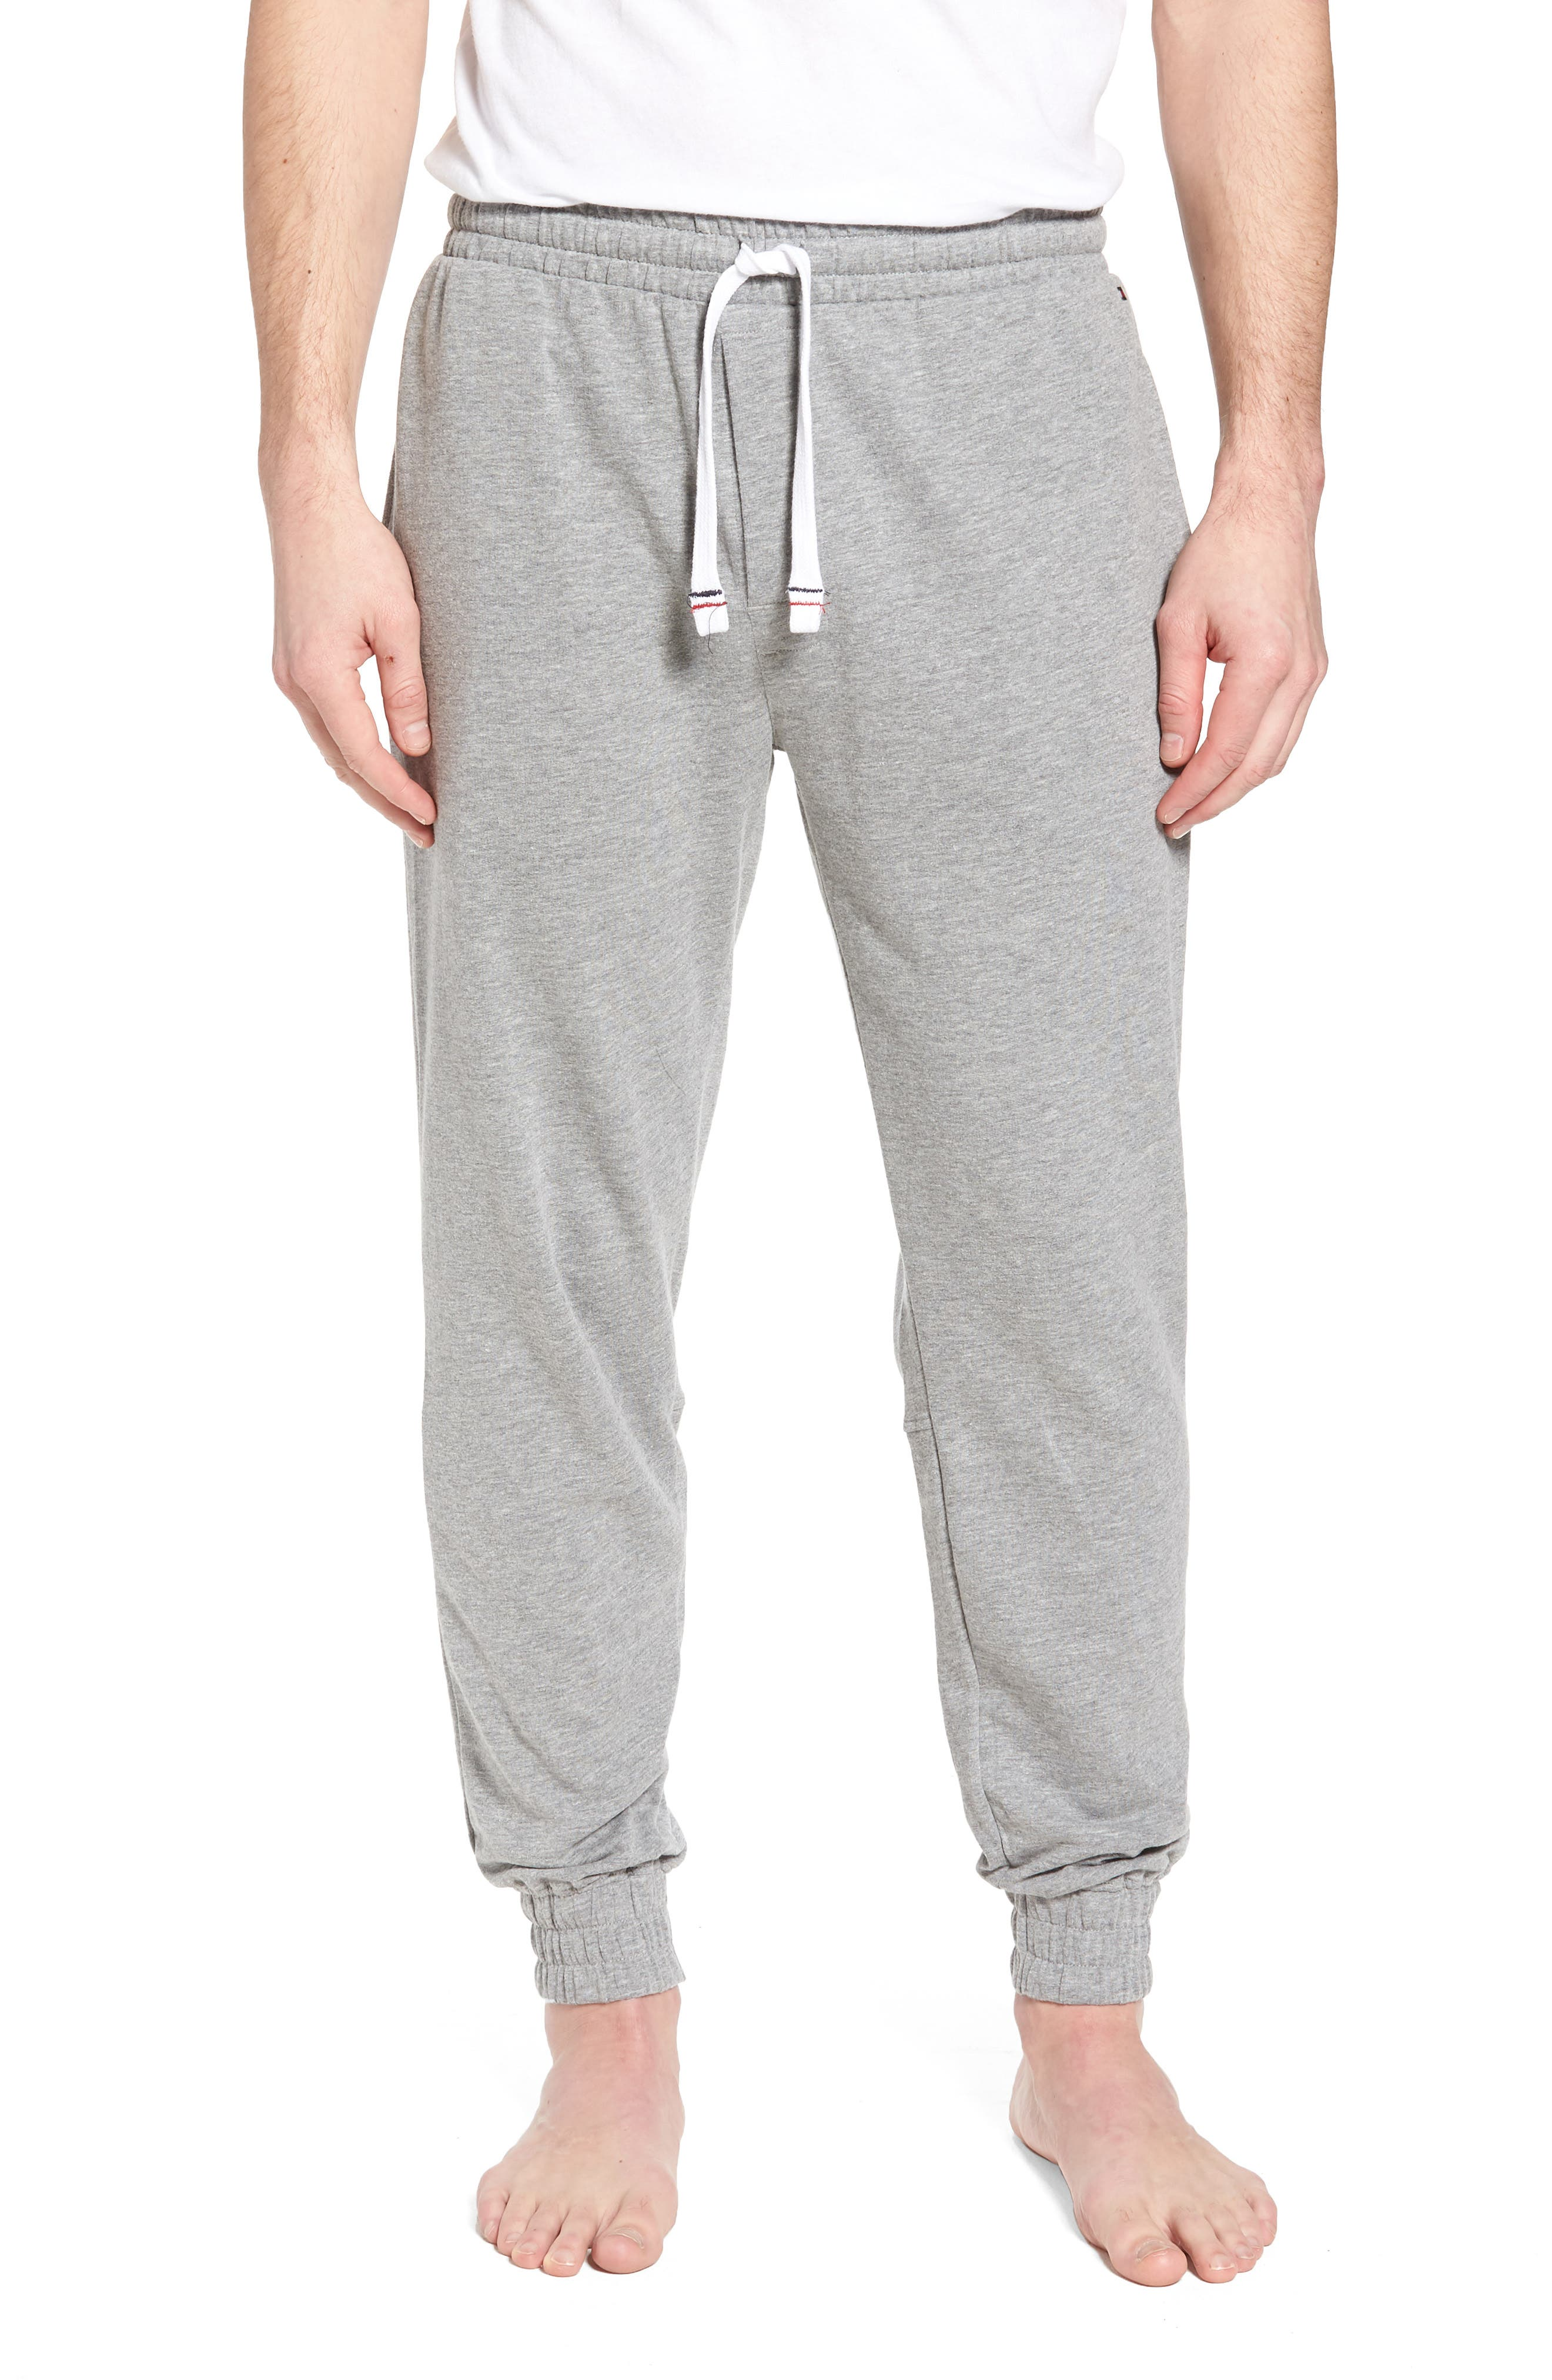 Jogger Lounge Pants,                             Main thumbnail 1, color,                             Grey Heather